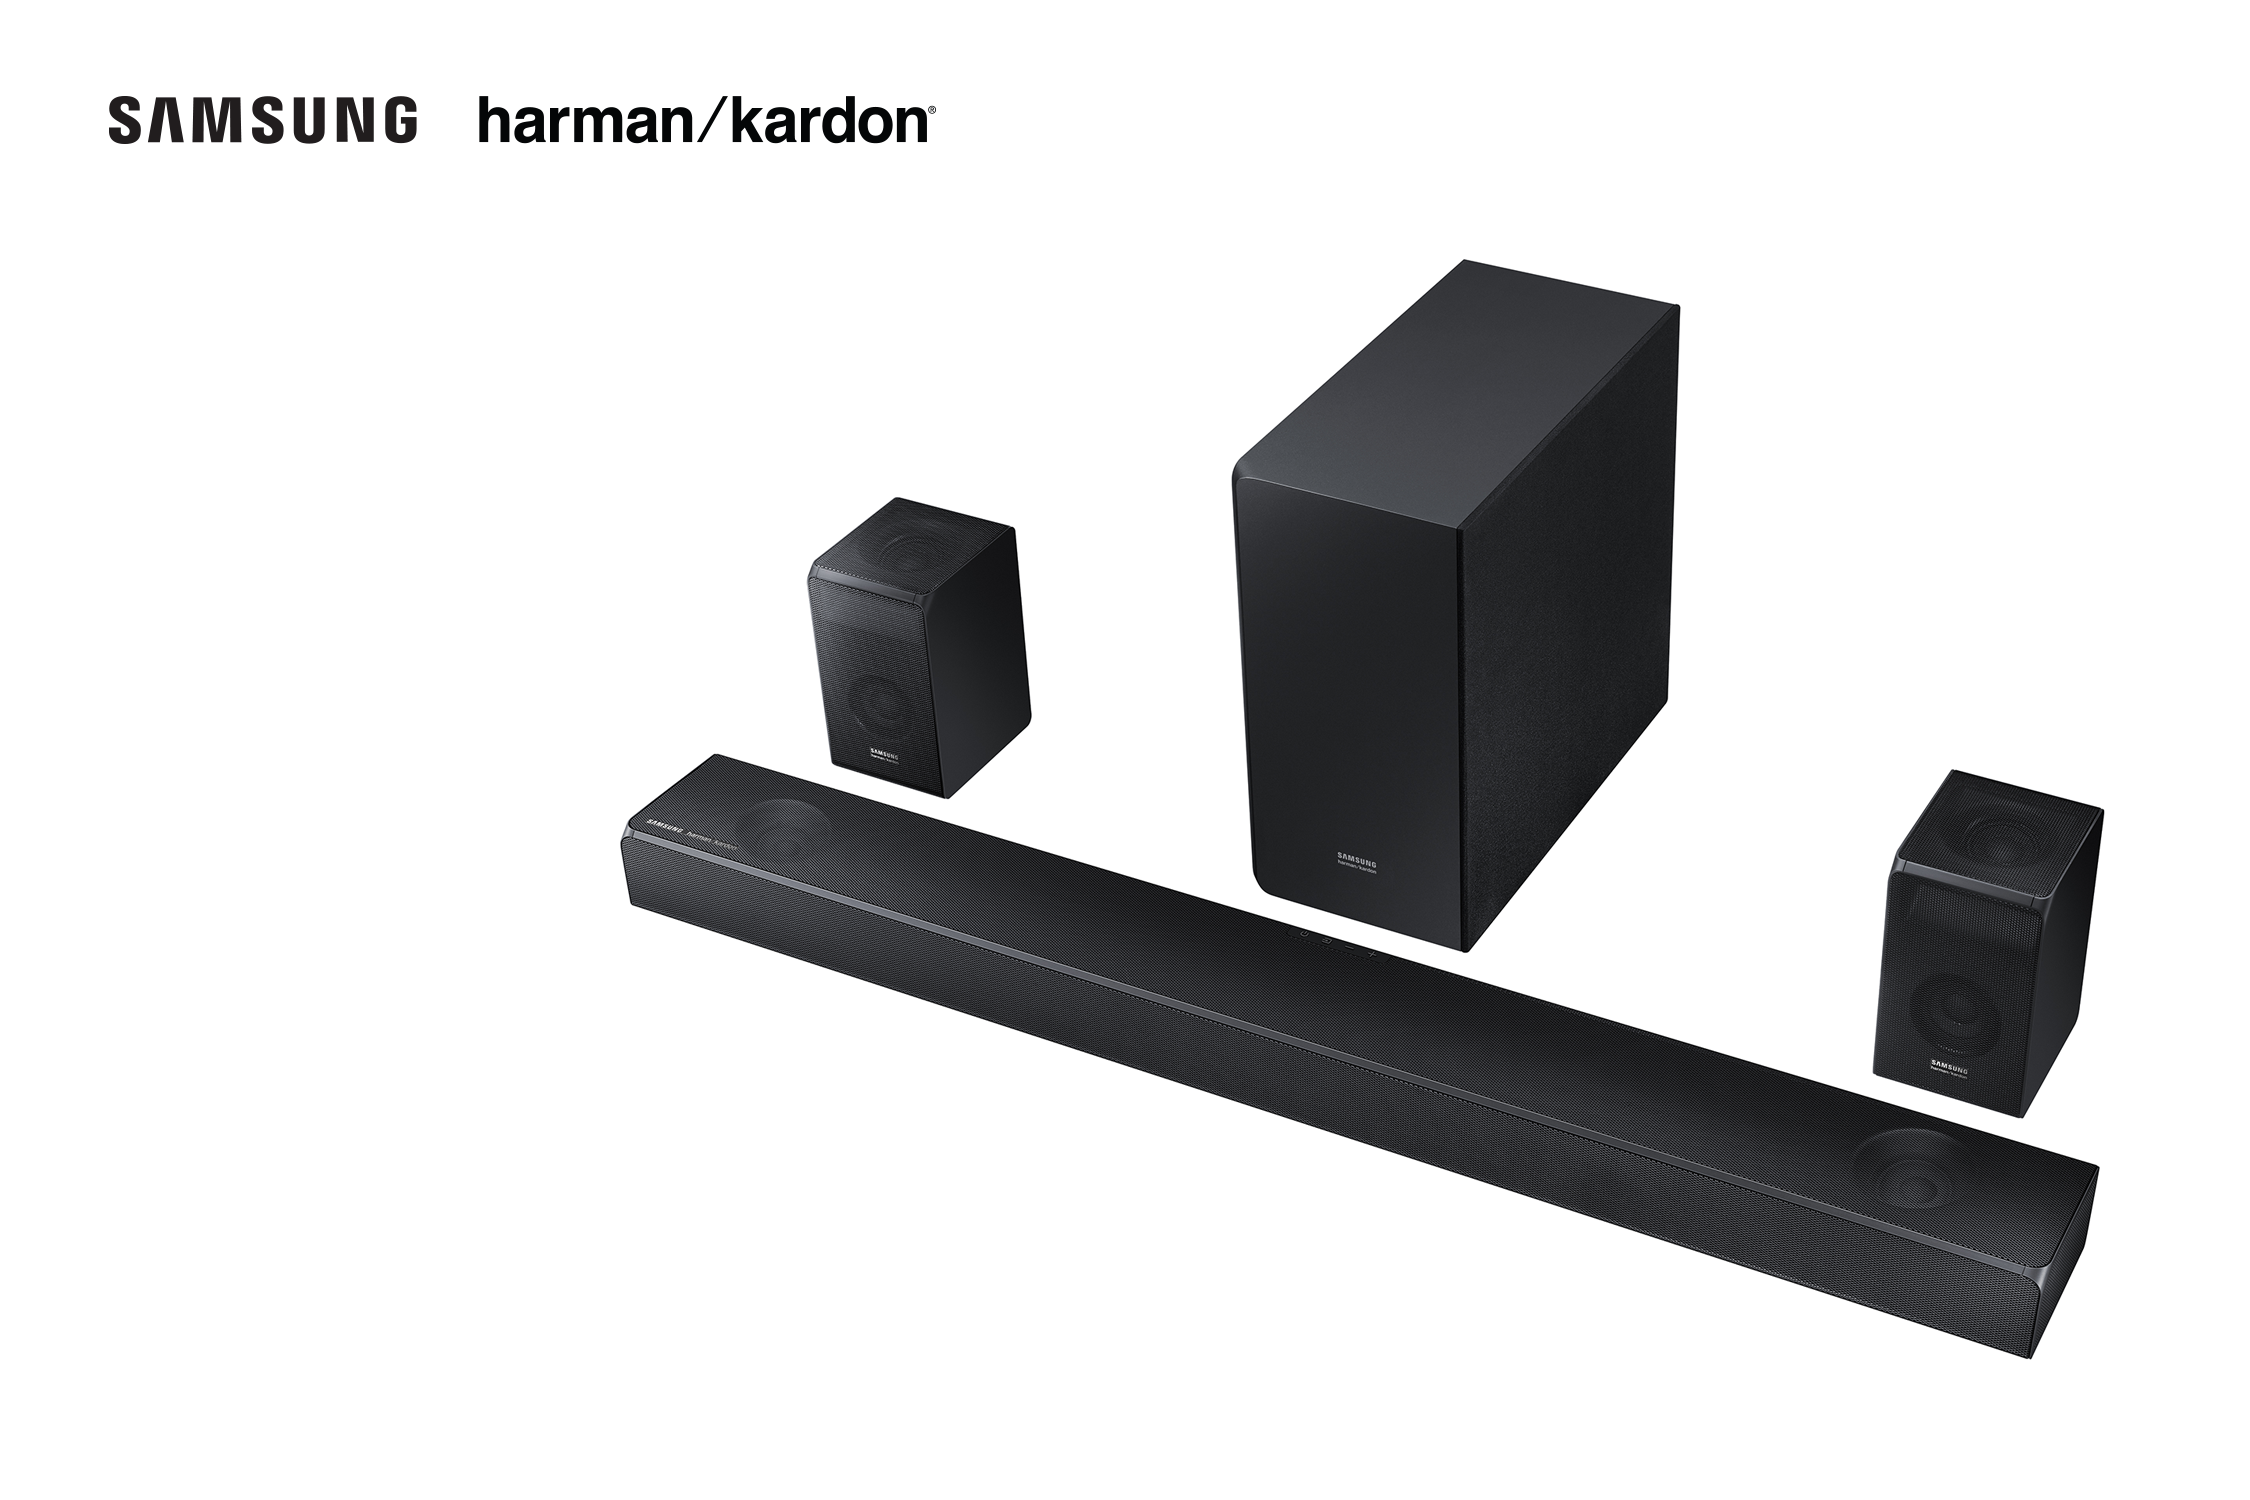 Samsung Launches 2 New Soundbars with Dolby Atmos and DTS:X Surround